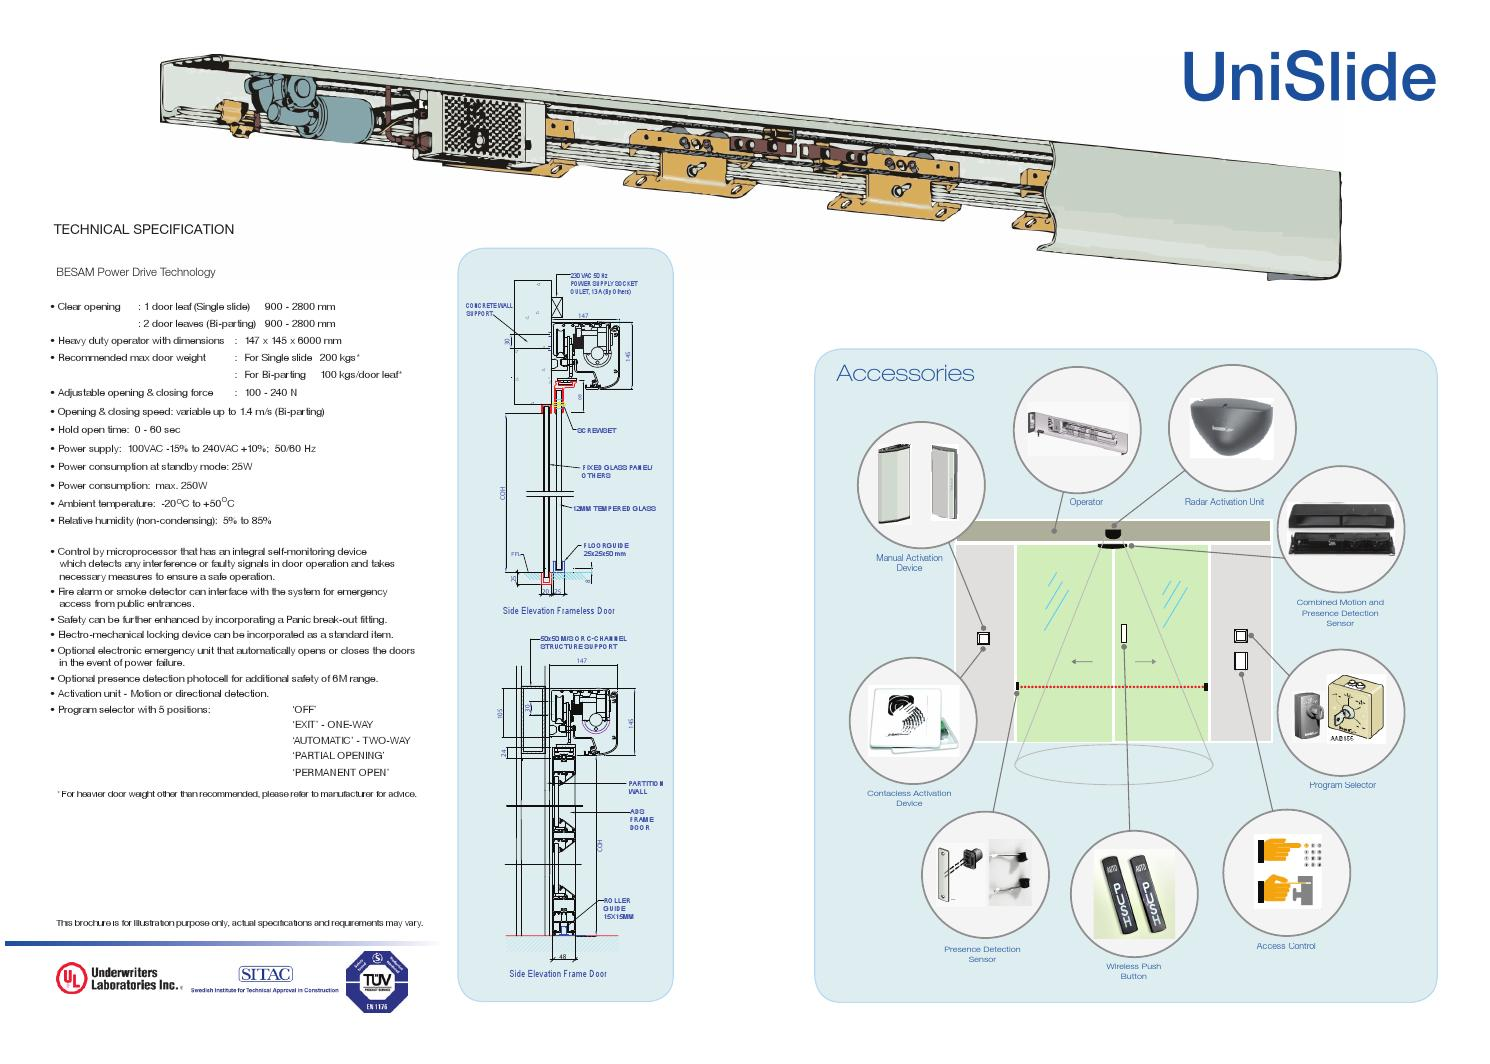 Wiring Diagram Besam 200i Jackson Diagrams Mitsubishi Securitron Unislide By Euronord Issuu On